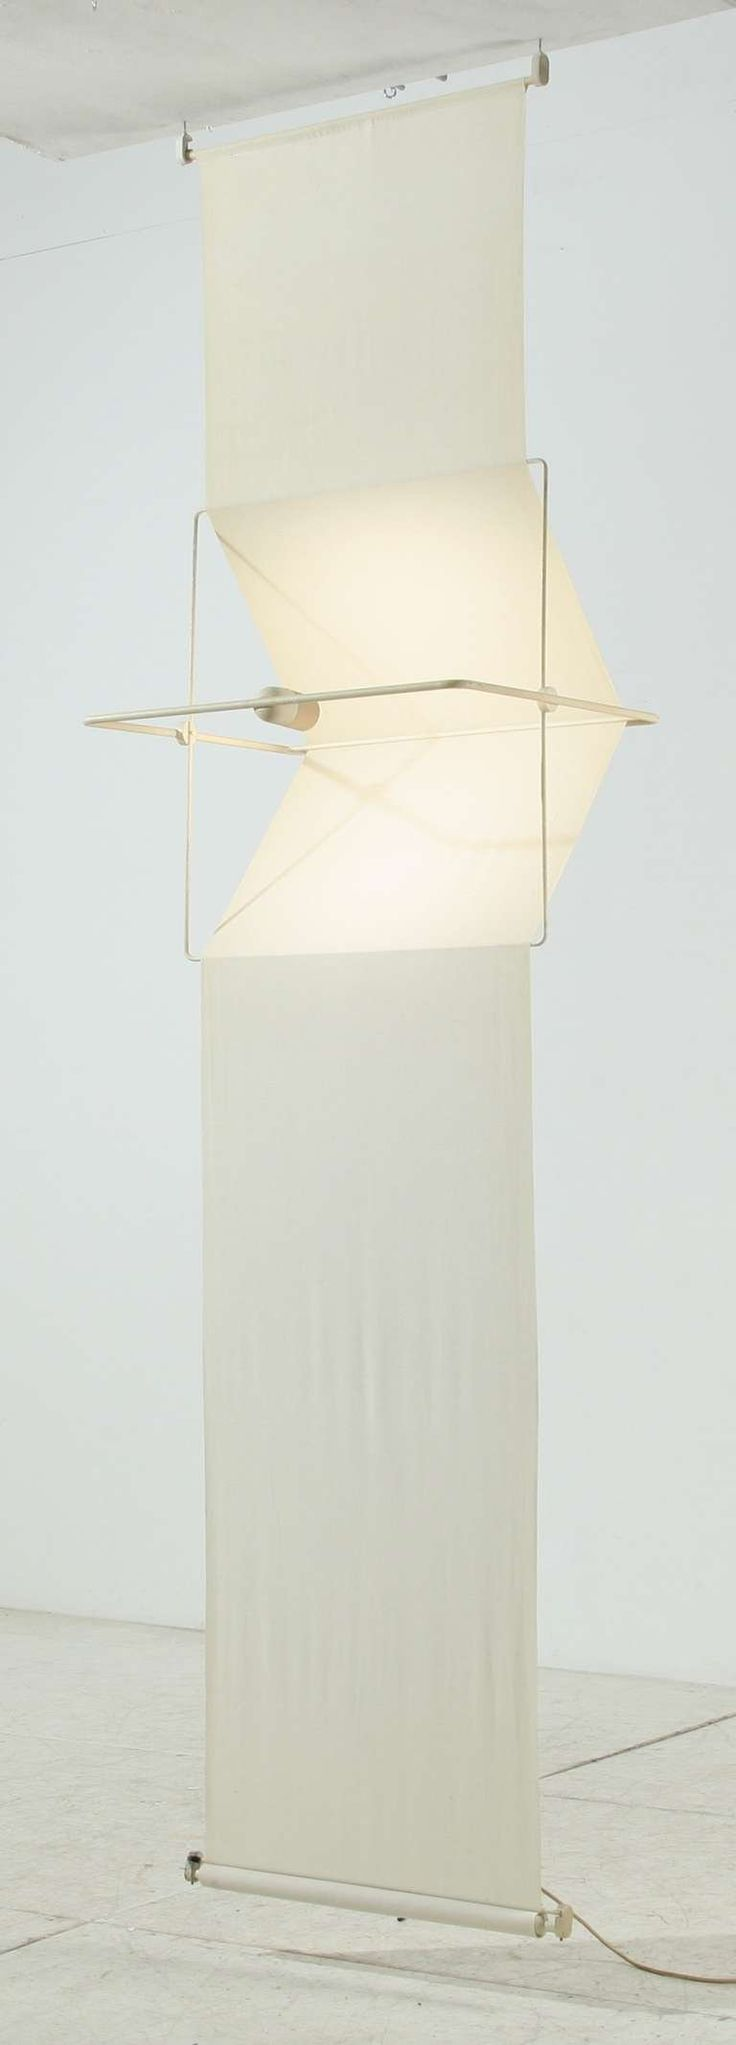 Rare Quinta Lamp and Room Divider by Silvio Coppola, Artemide, Italy, 1970s